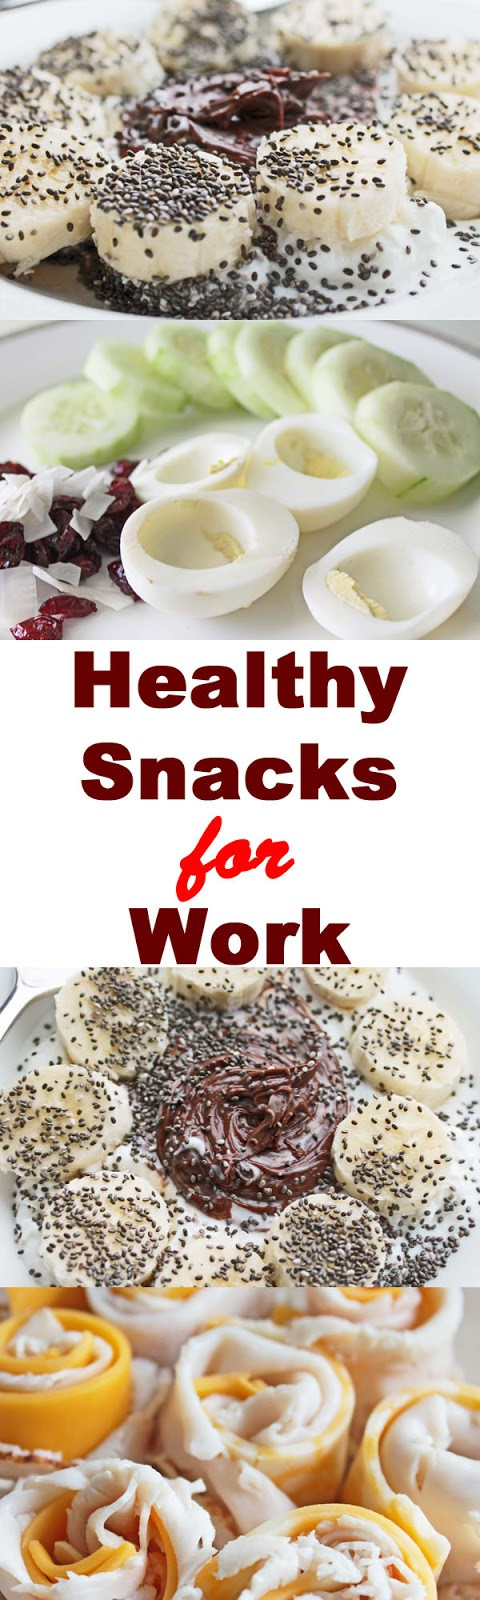 Healthy Snacks For Work  Healthy Snacks for Work Daily Re mendations 13